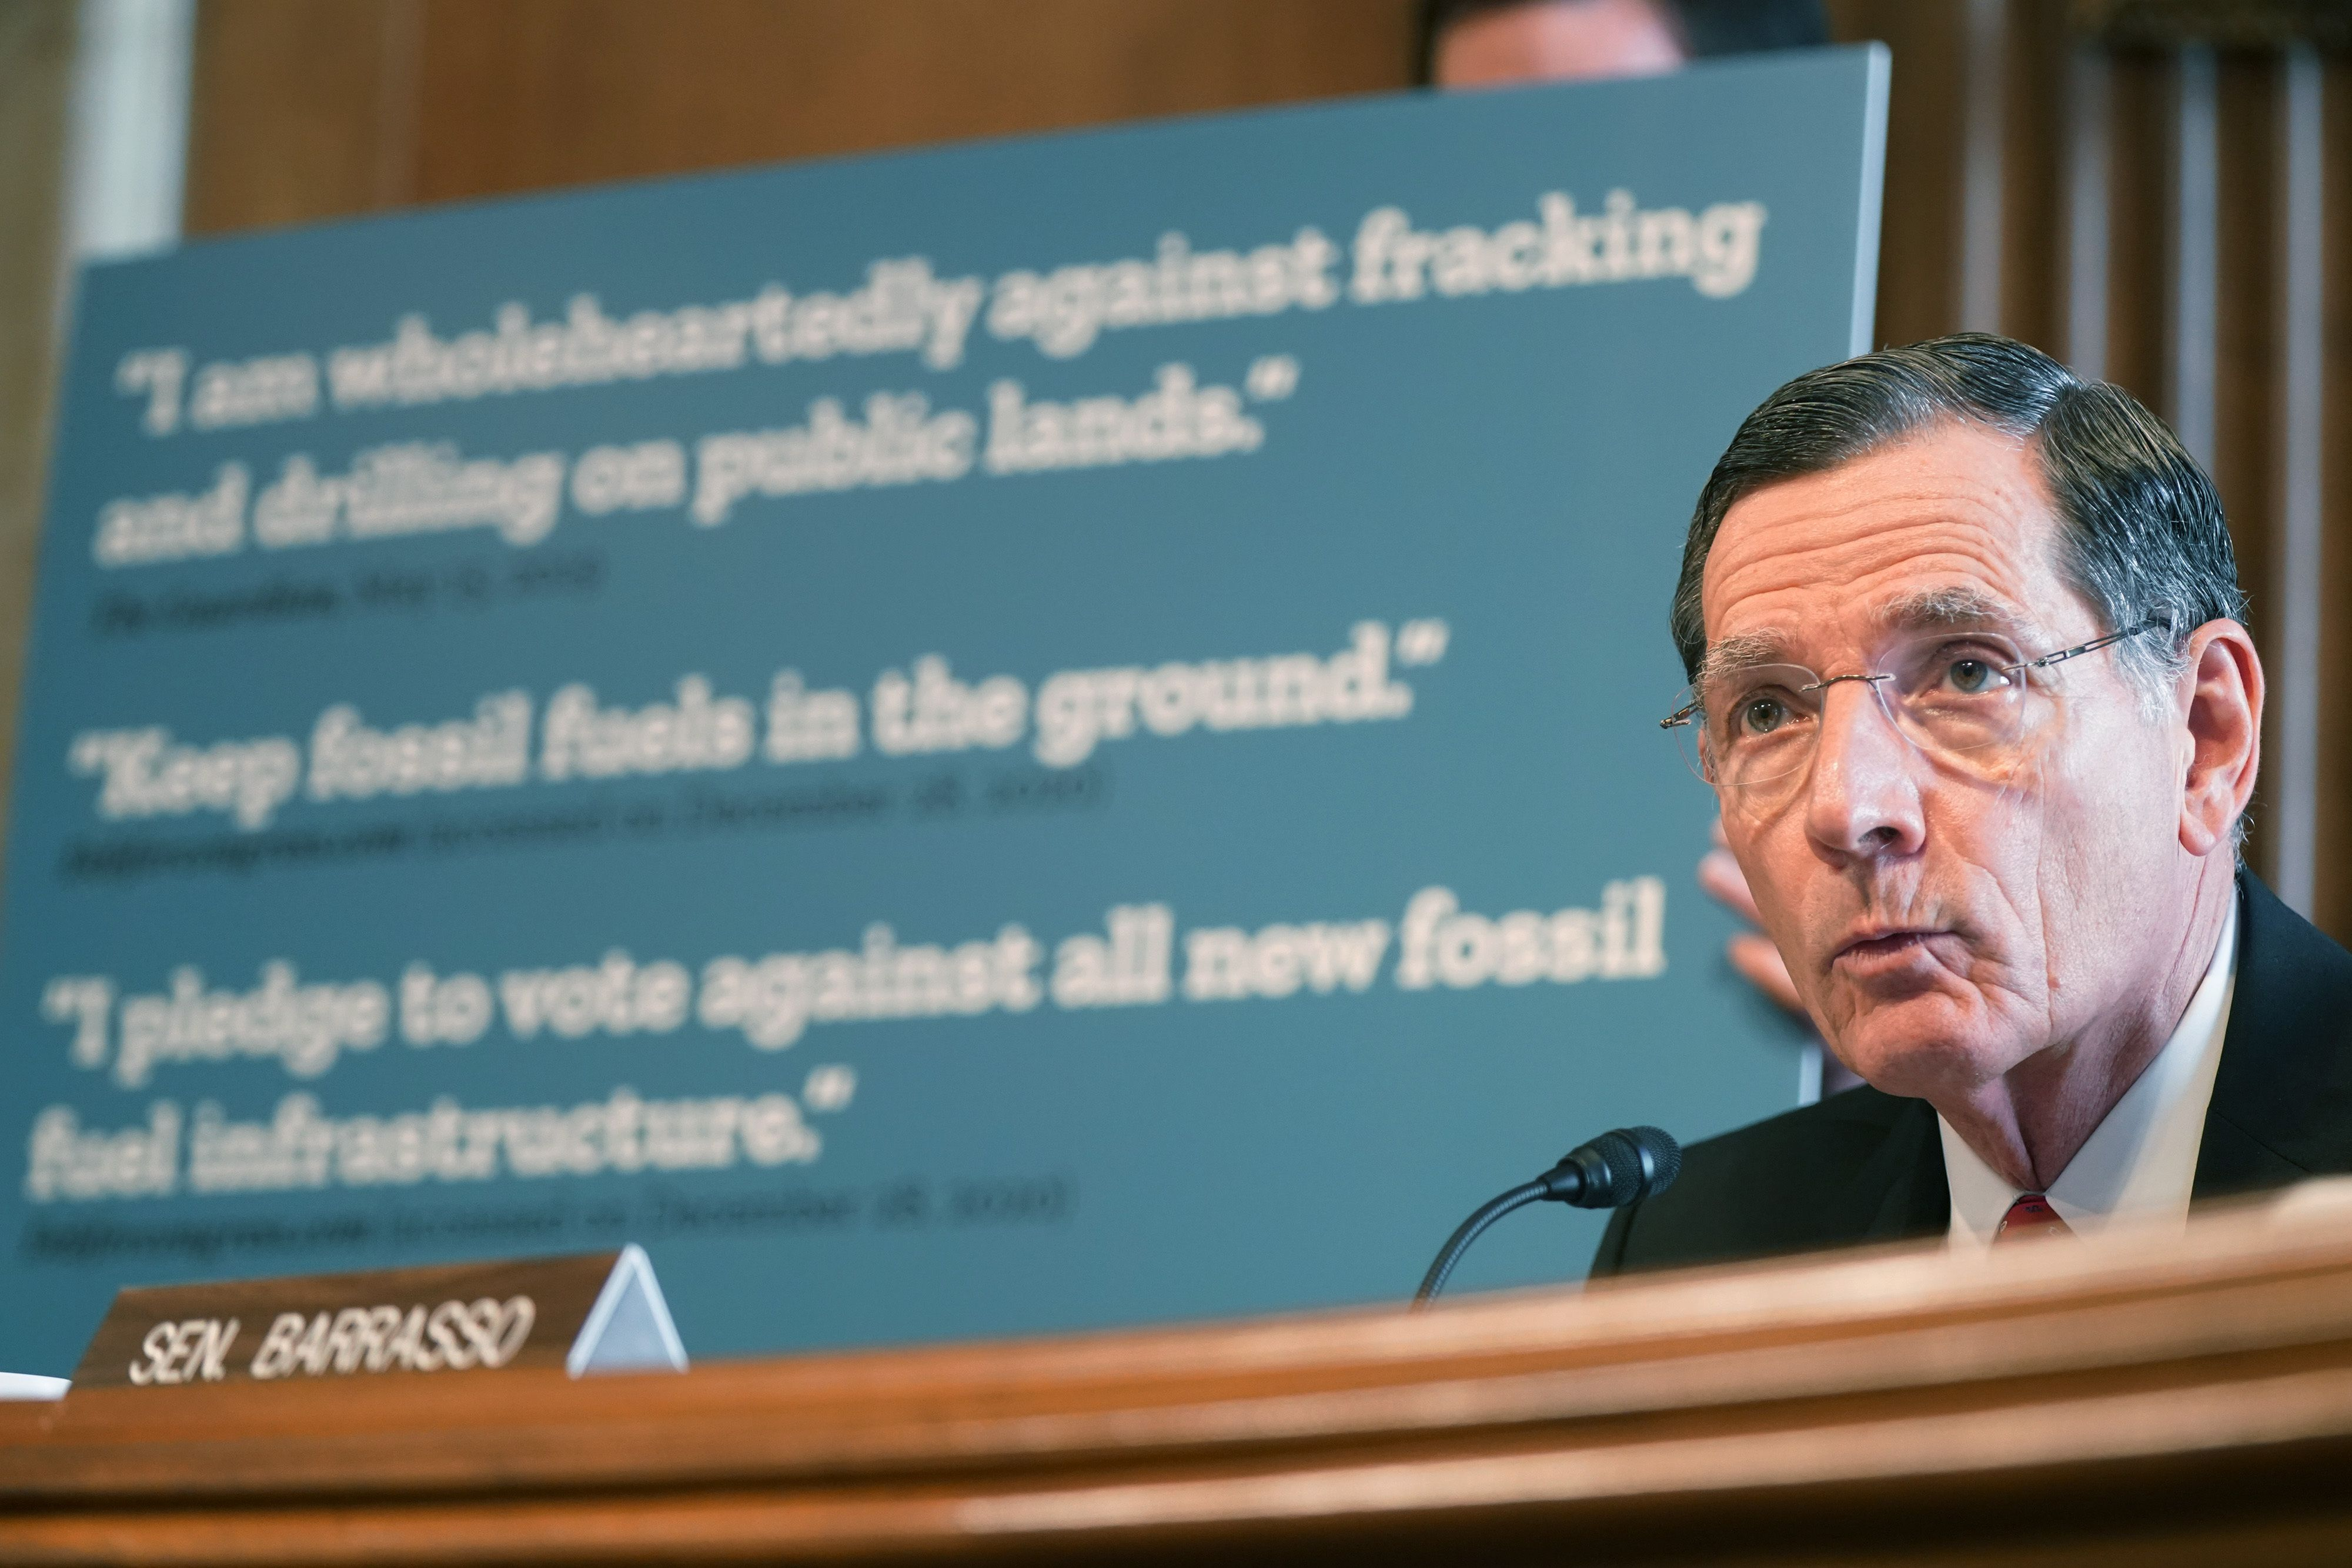 Sen. John Barrasso (R-Wyo.) had a very limited focus on what he asked Haaland about at Energy and Natural Resources Committee